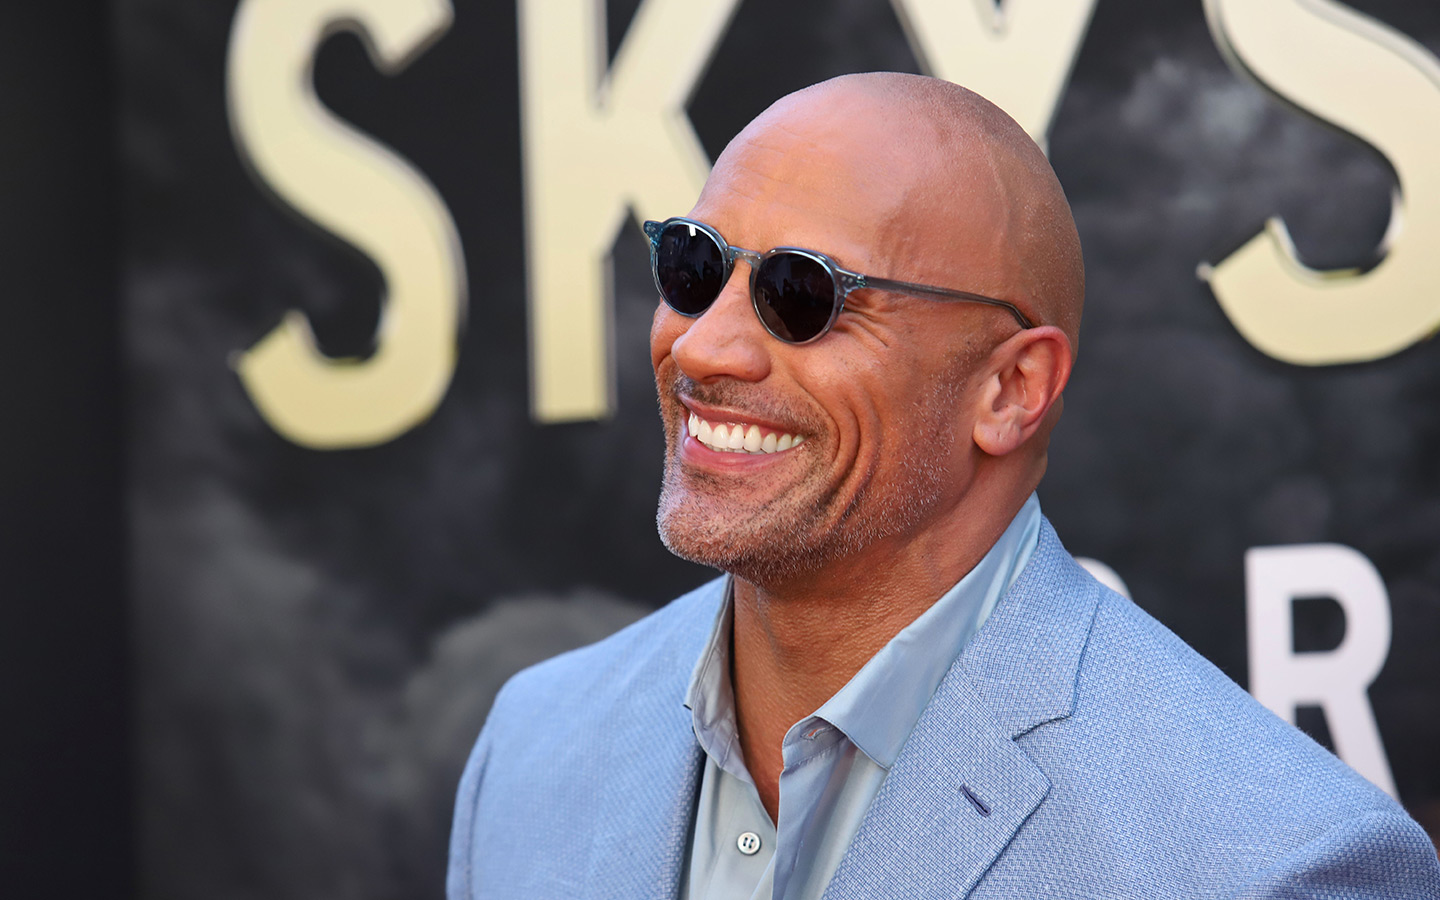 Dwayne The Rock Johnson has been awarded a star on the Dubai Walk Of Fame